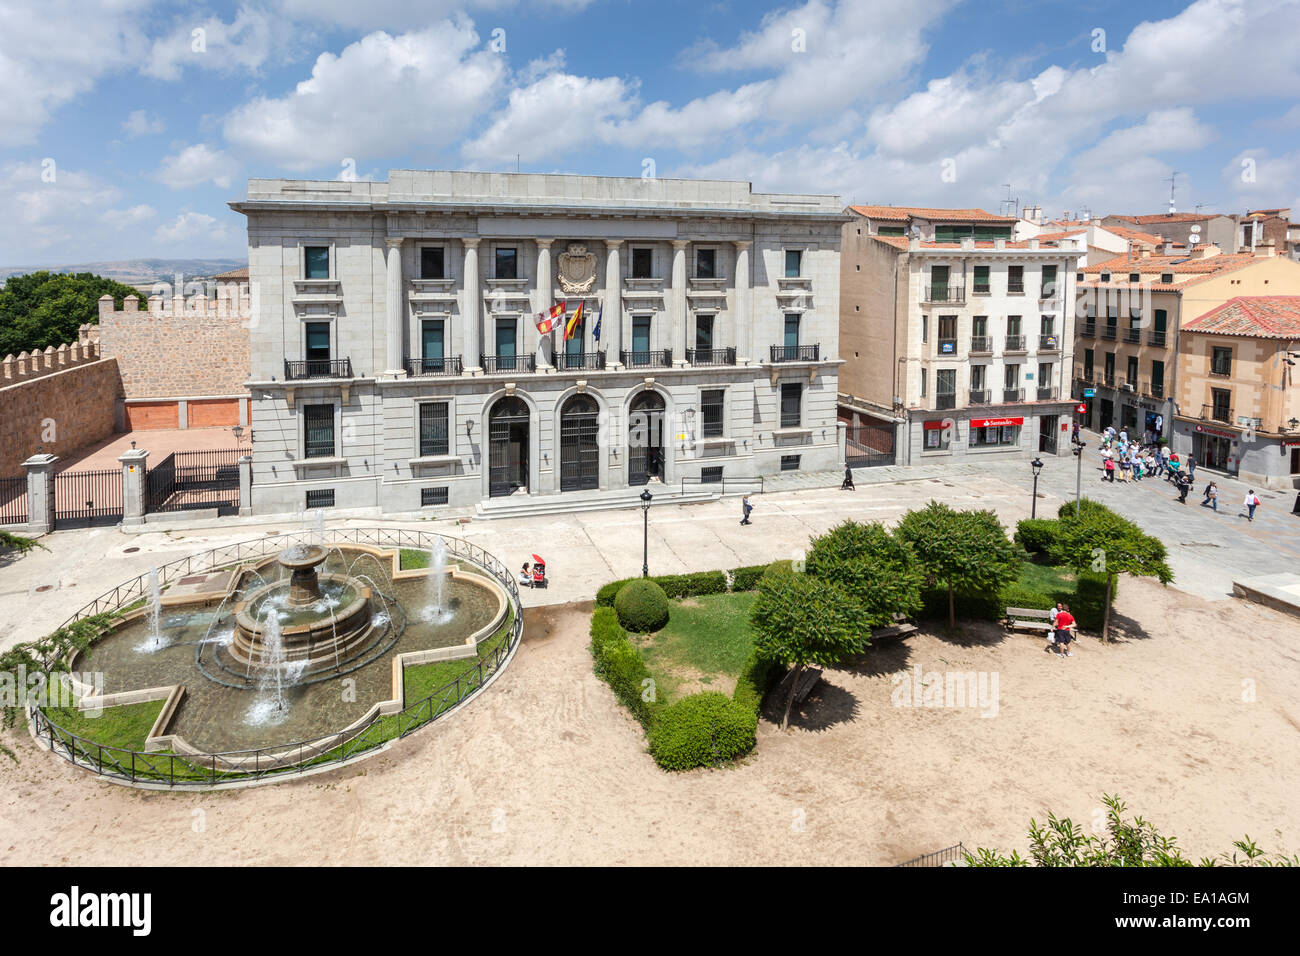 Square with a fountain in the old town of Avila, Castilla y Leon, Spain - Stock Image